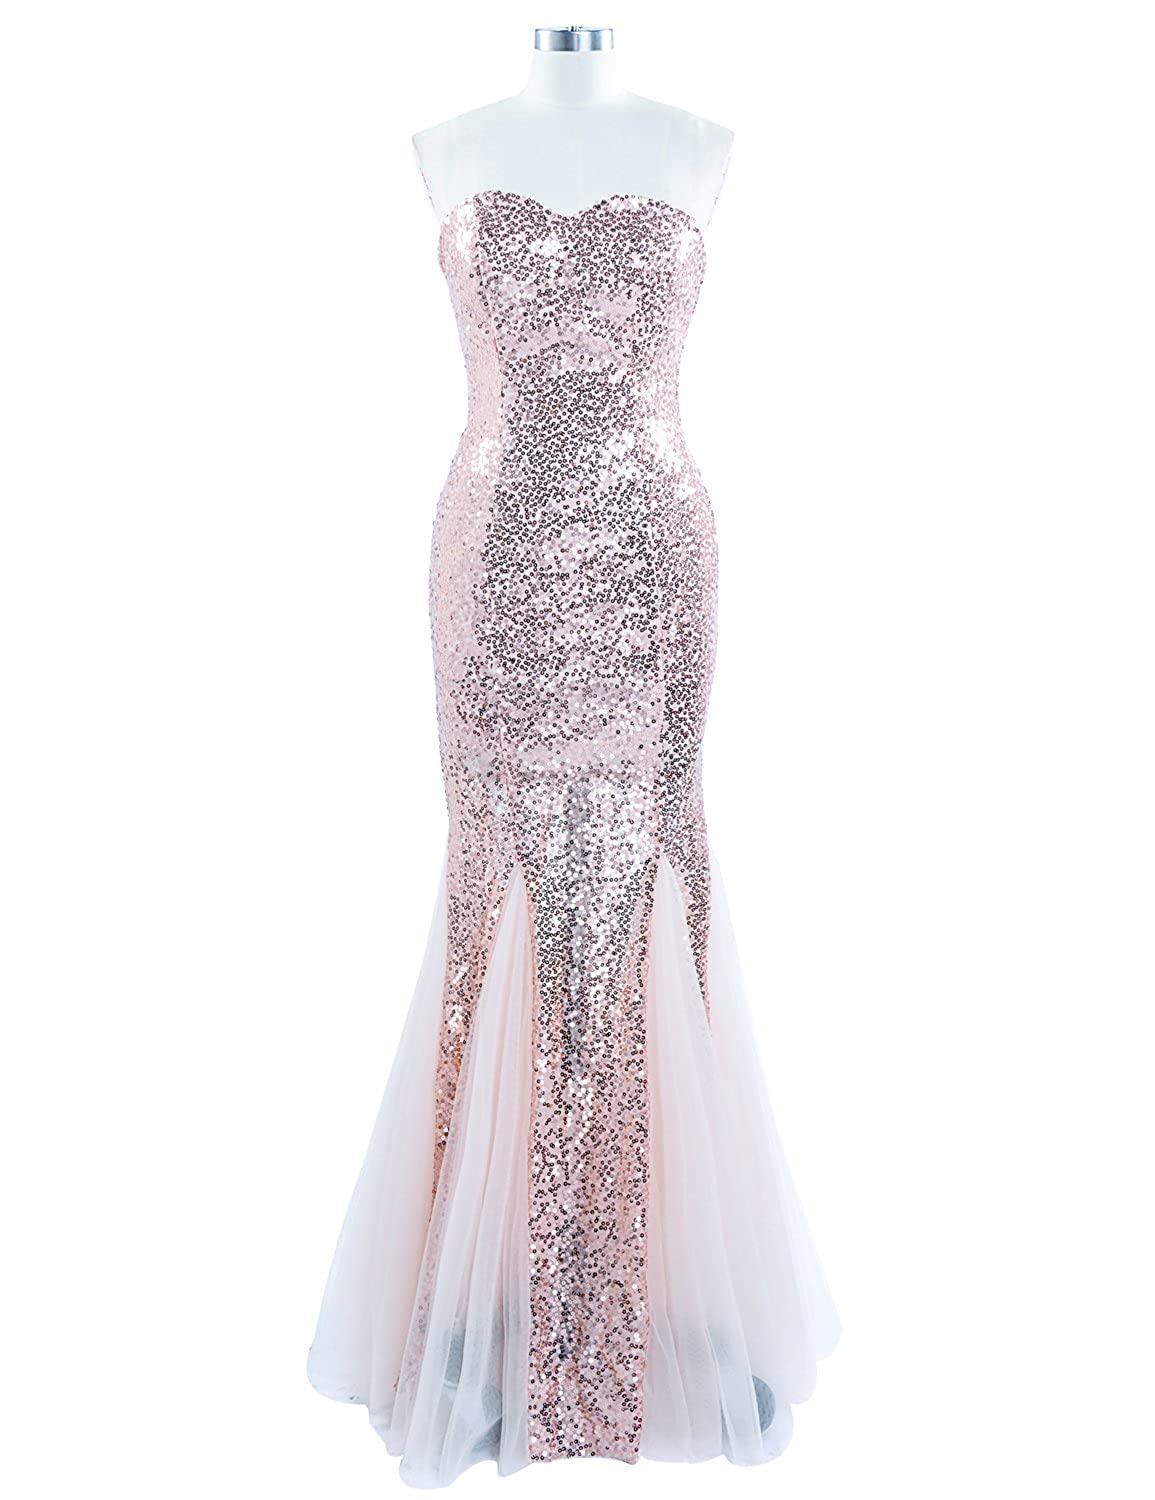 Sarahbridal Women's Long Mermaid Evening Prom Dresses Sequined Formal Occasion Dress SSD235